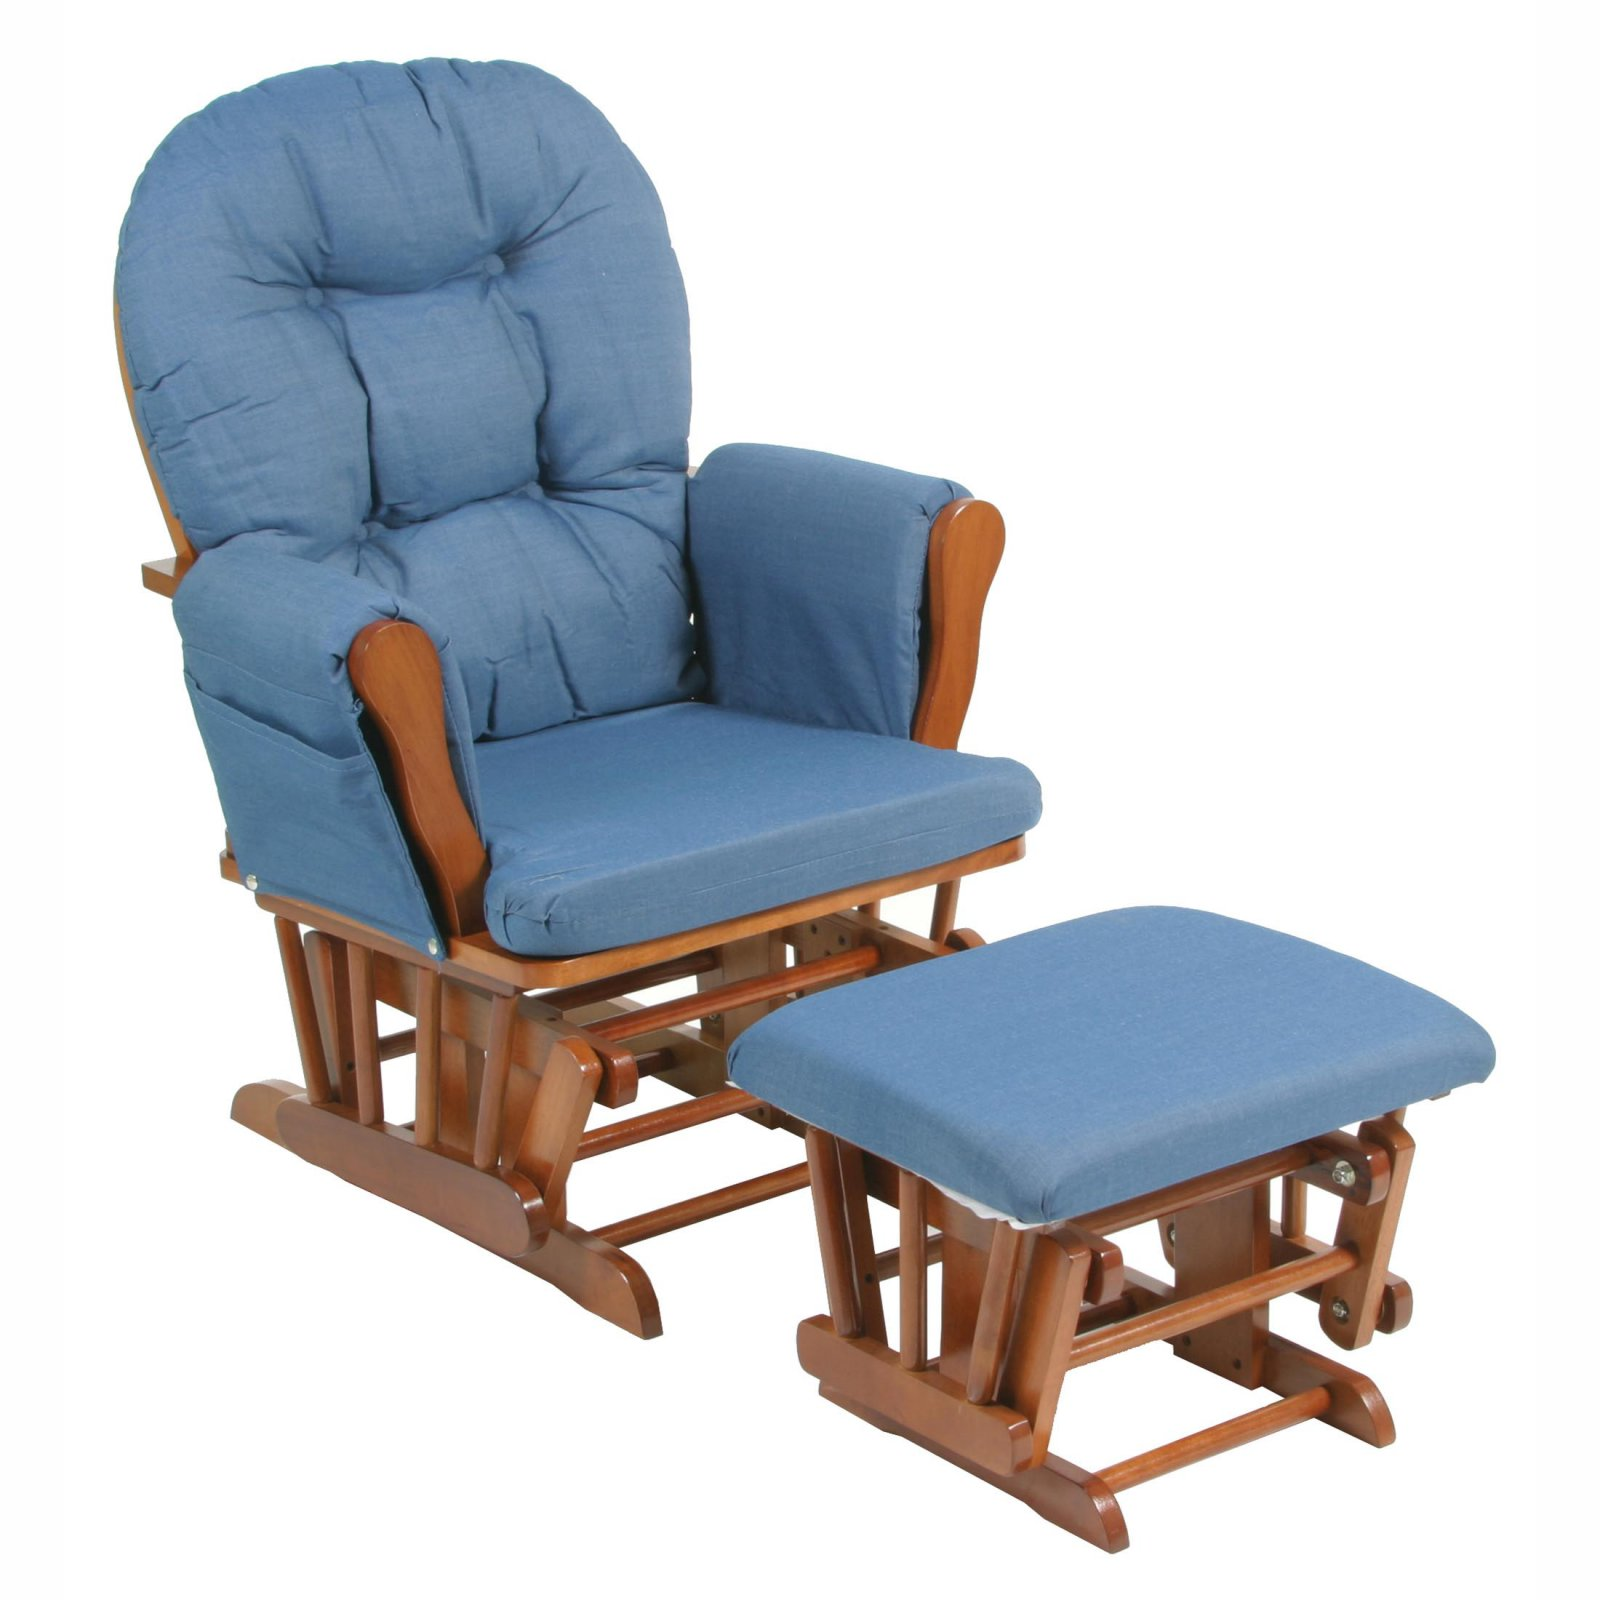 Click here to buy Storkcraft Bowback Glider and Ottoman Set Cognac Denim by Storkcraft.